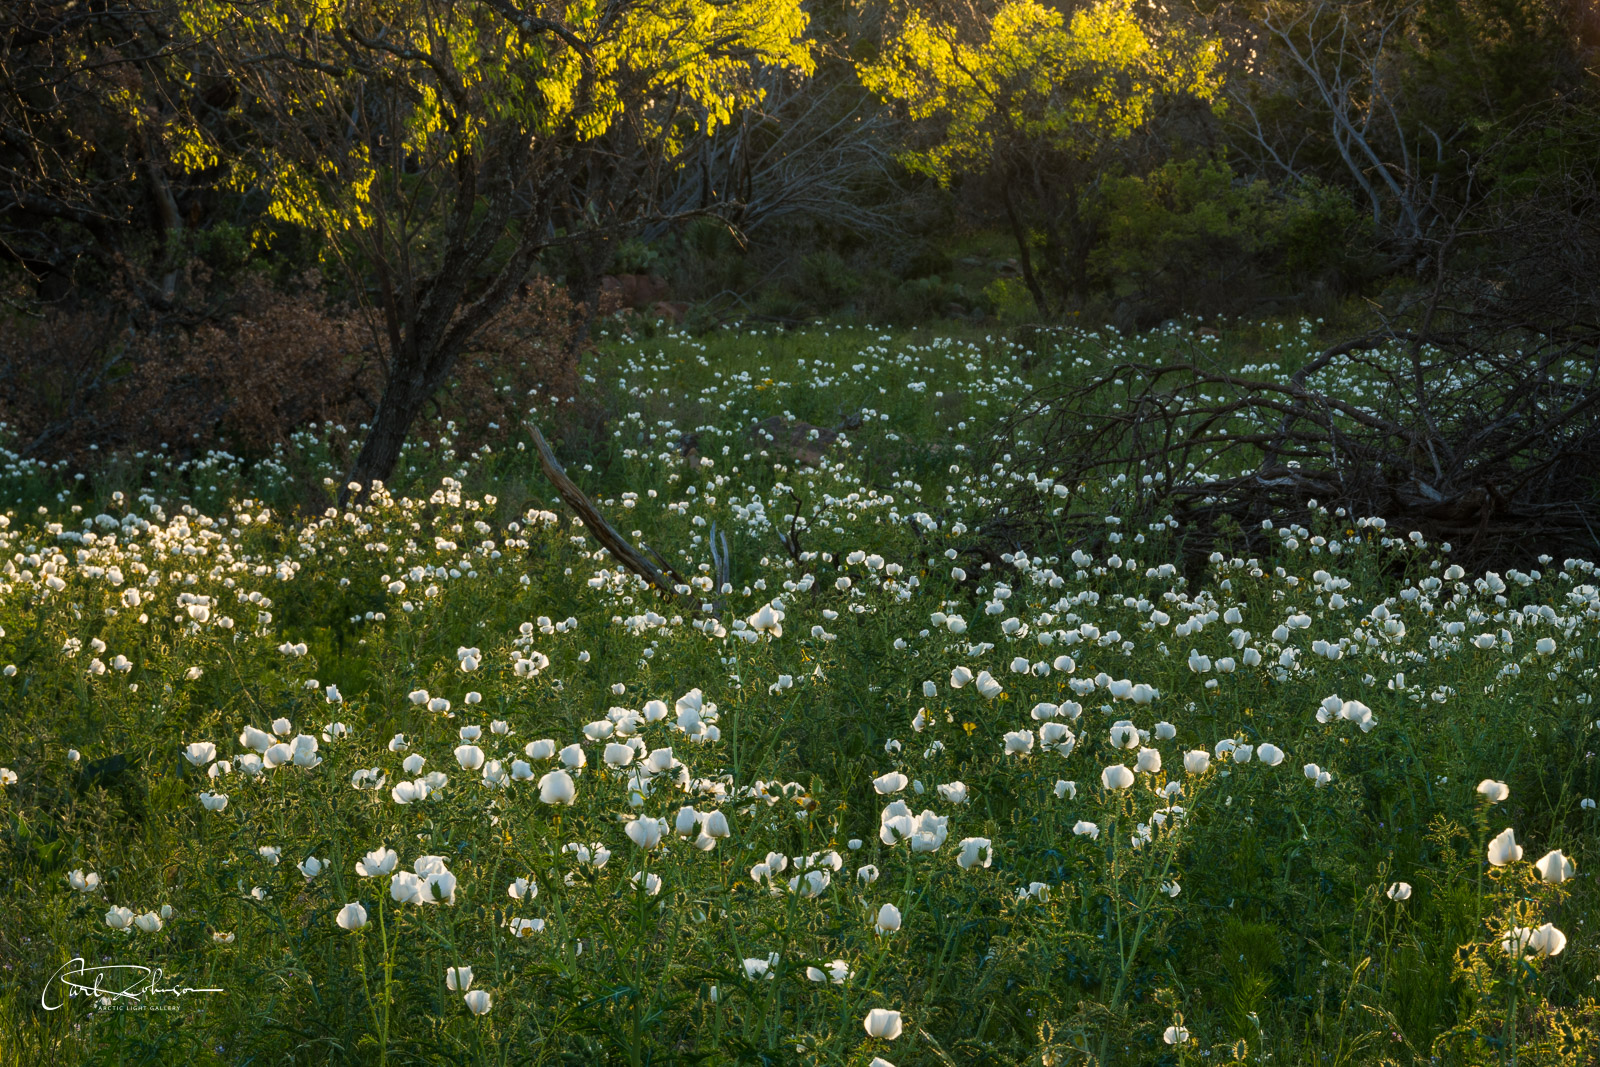 A field of white prickly poppies and trees are backlit by morning light along the Willow City Loop in the Texas Hill Country.